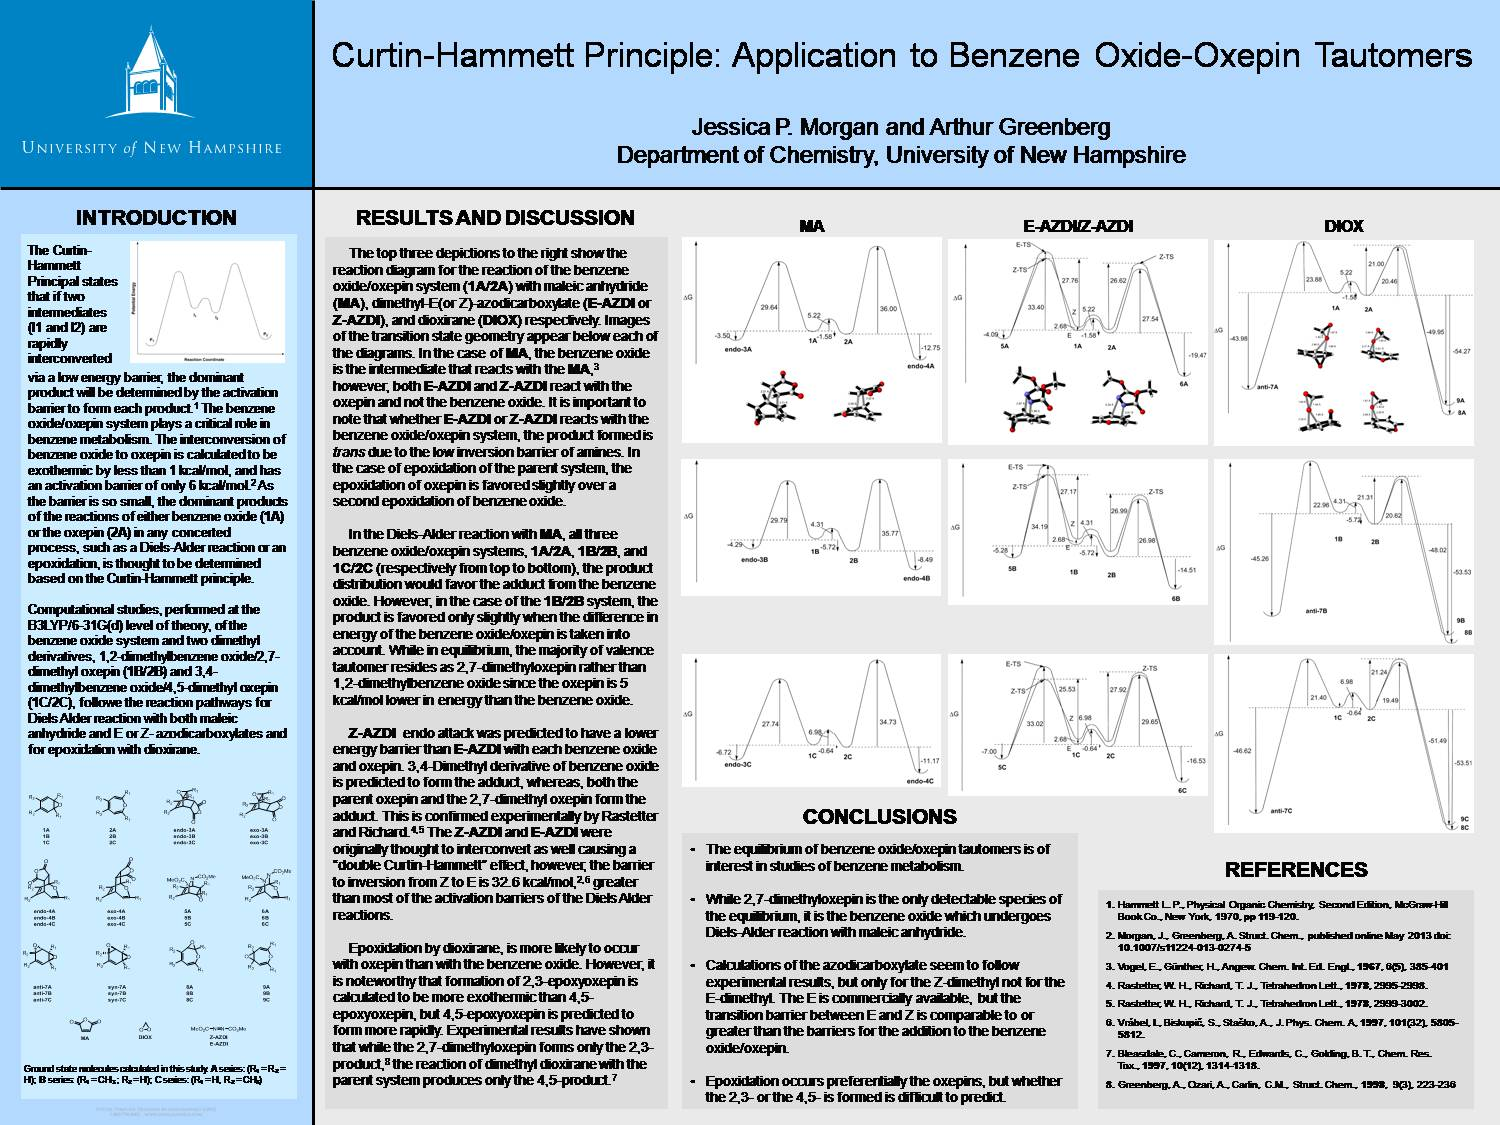 Curtin-Hammett Principle: Application To Benzene Oxide-Oxepin Tautomers by jessmorgan1178